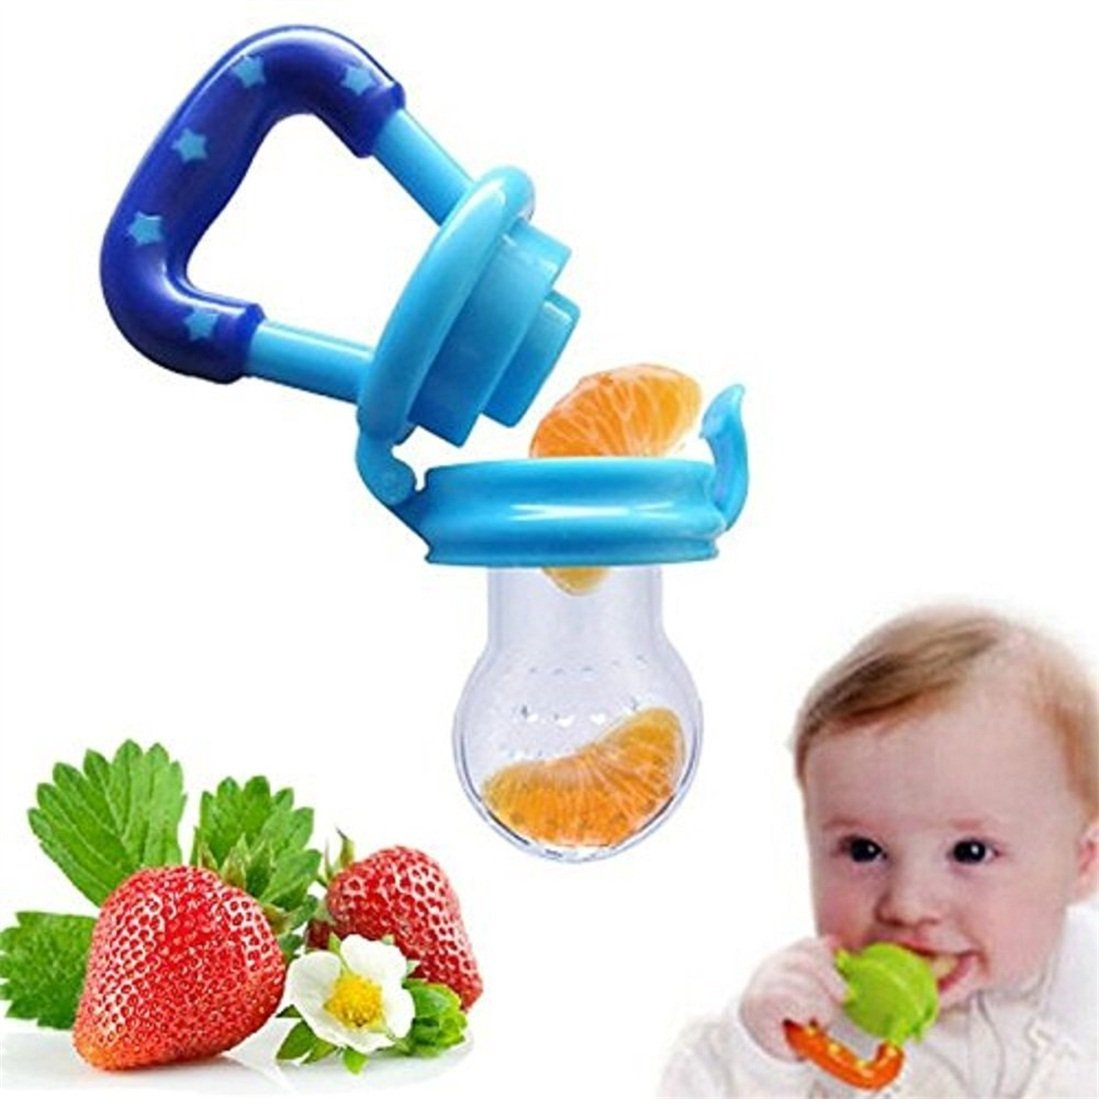 Gearmax for Baby Feeder Pacifier Teether Nipple Silicone Sac for Feeding Food Fruit (M, Blue)